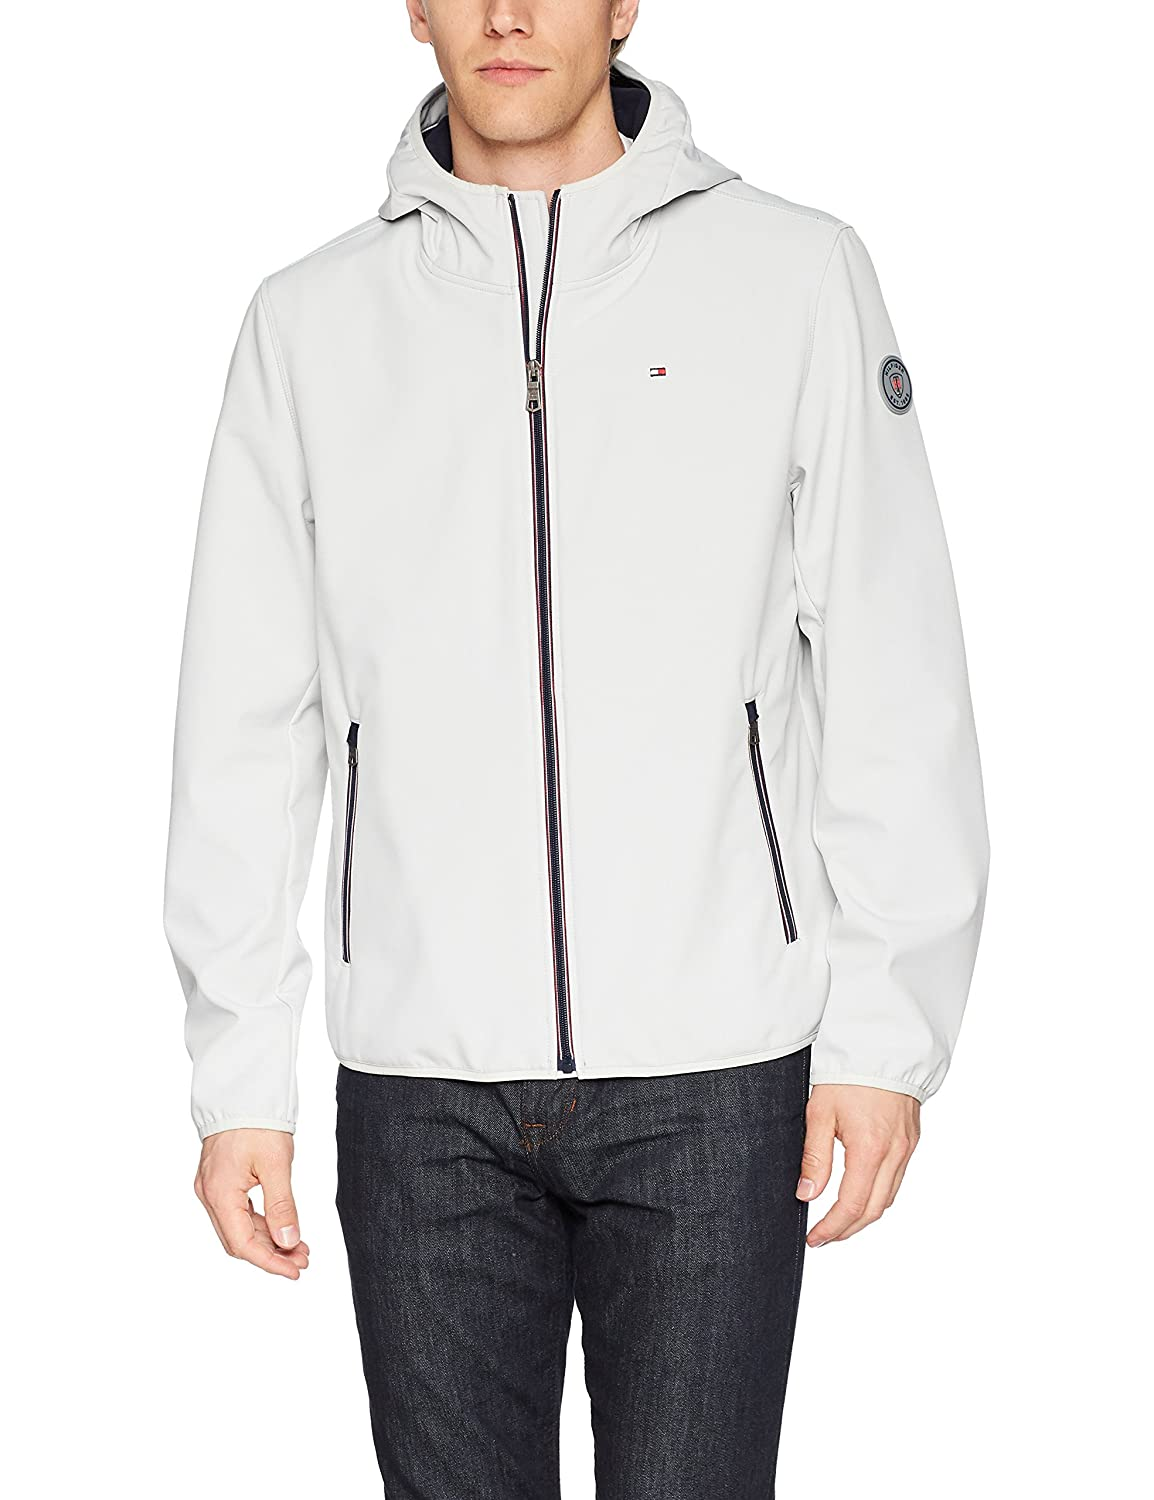 3db6f9c0 Tommy Hilfiger Mens Hooded Performance Soft Shell Jacket Windbreaker  Jacket: Amazon.ca: Clothing & Accessories